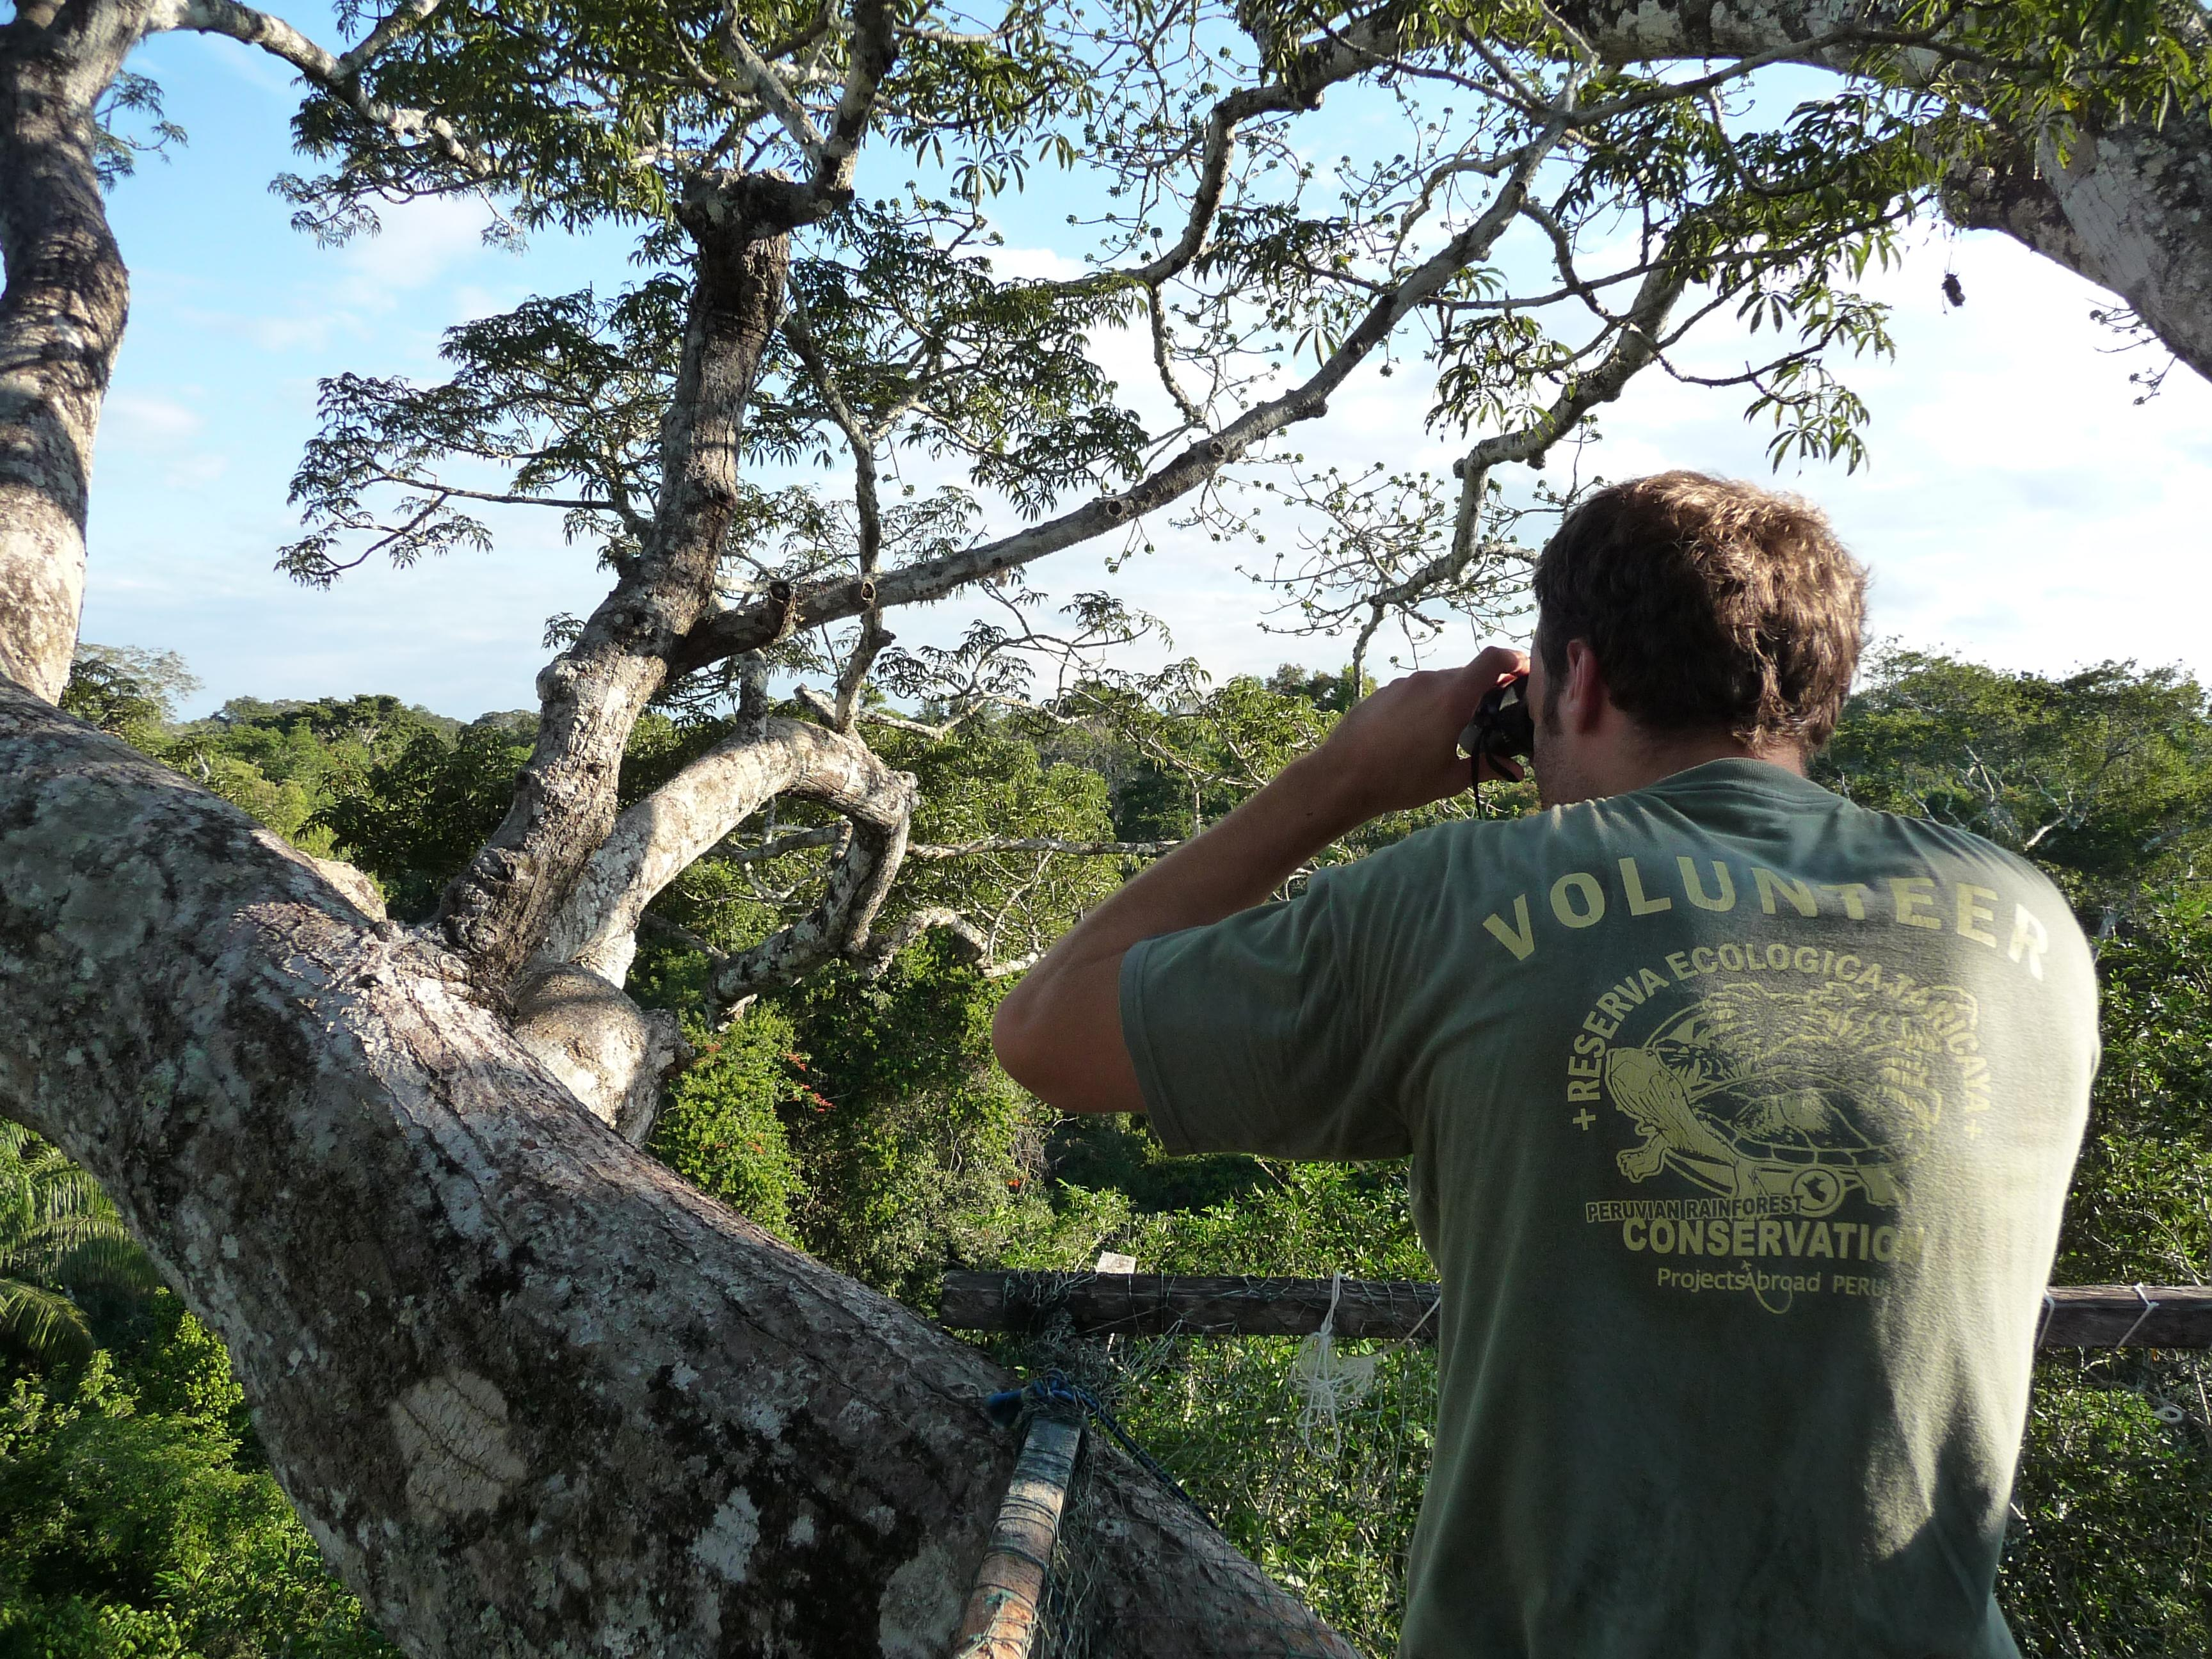 A Projects Abroad male volunteer seen bird watching as part of his conservation volunteer work in the Amazon Rainforest in Peru.